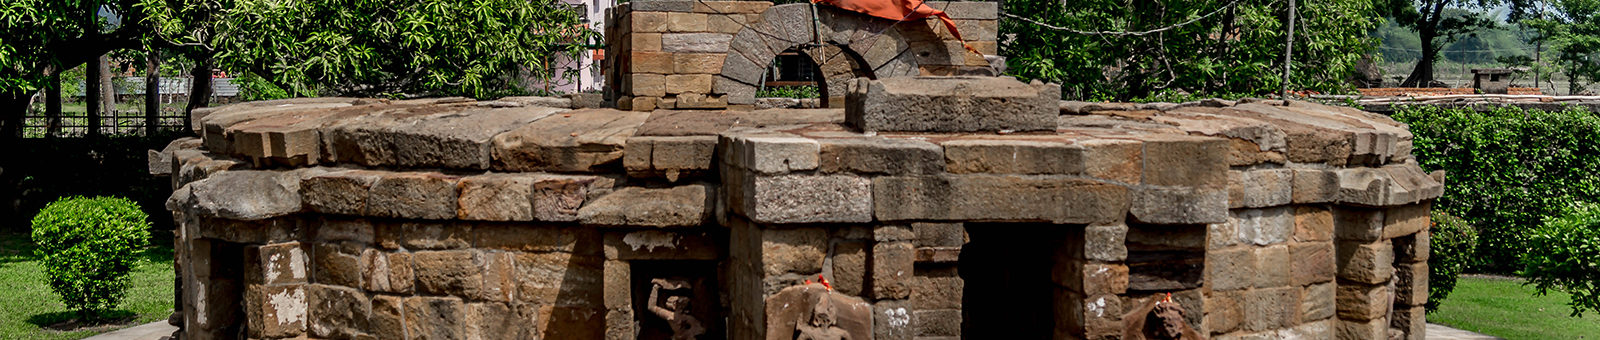 Chausathi-Yogini-Temple-pic-by-Subhrajit